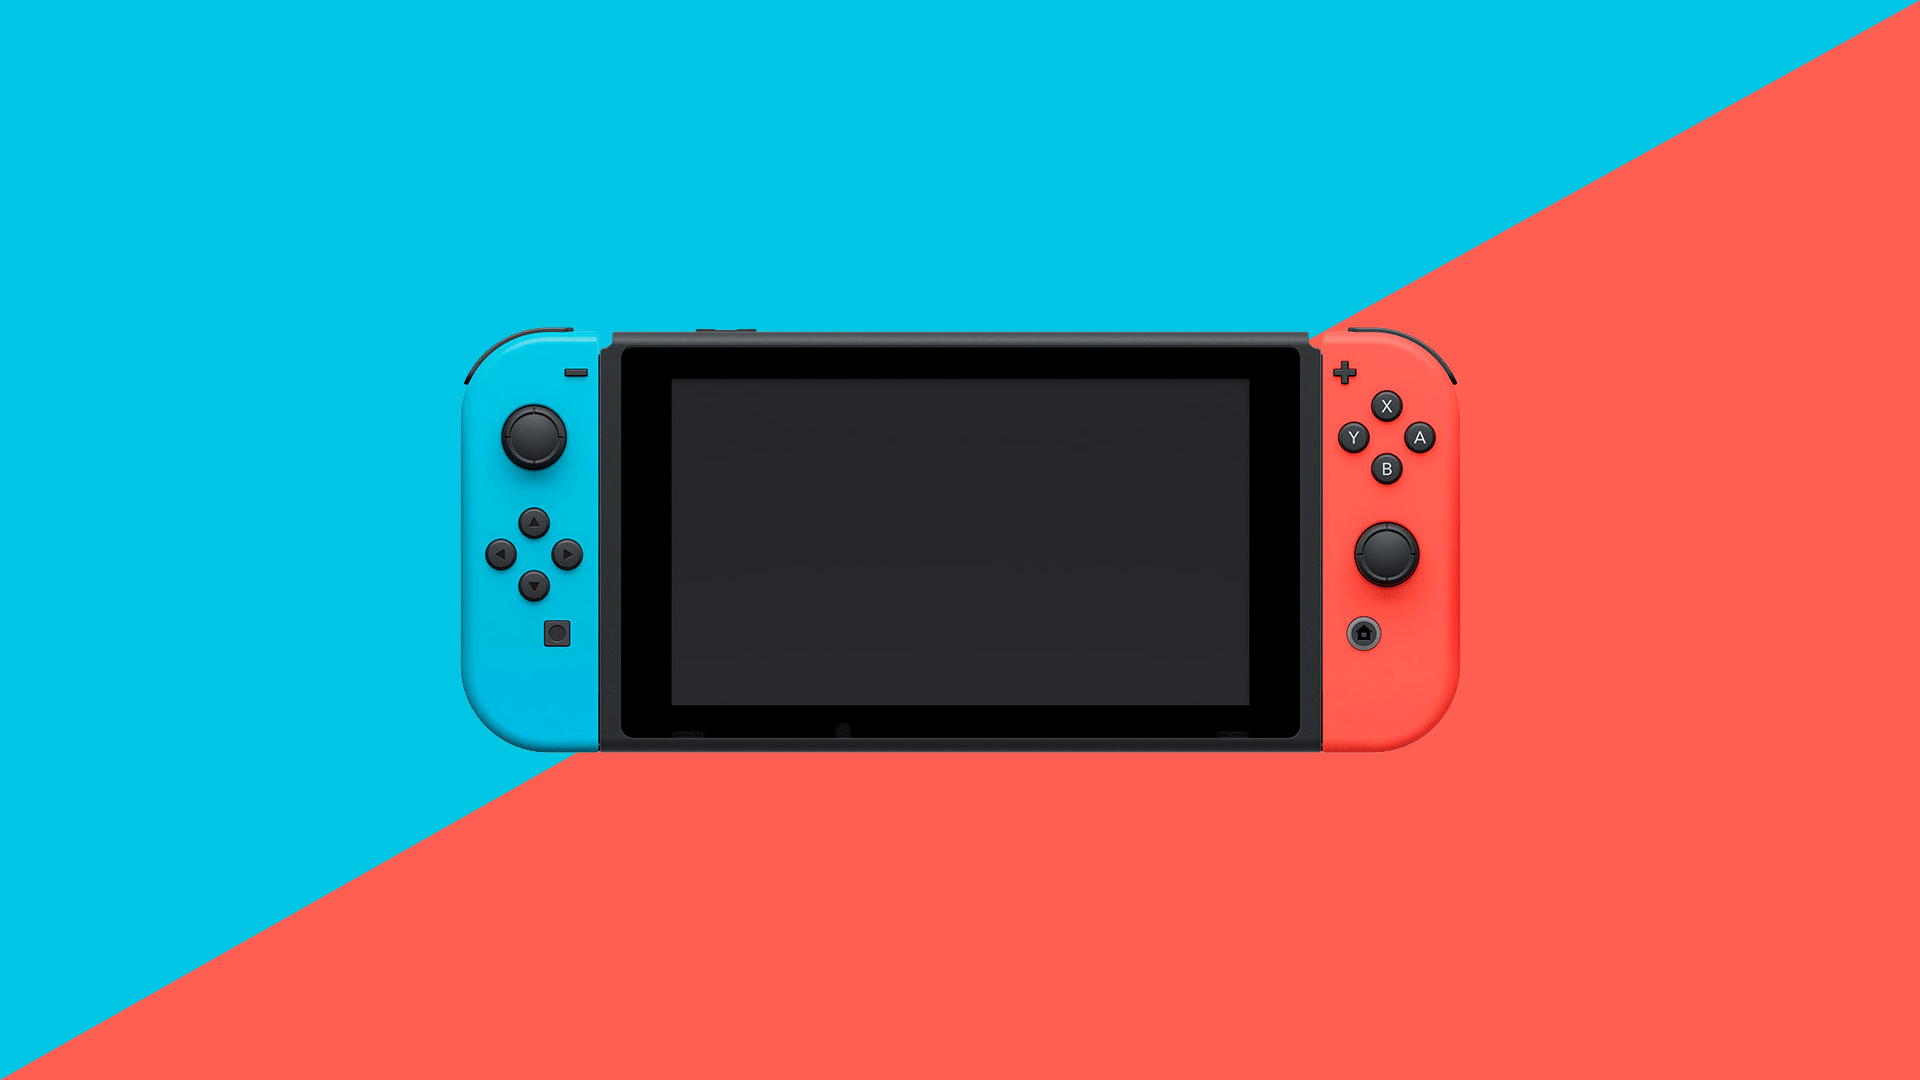 1920x1080 Some selfmade Nintendo Switch background for computer 1920x1080